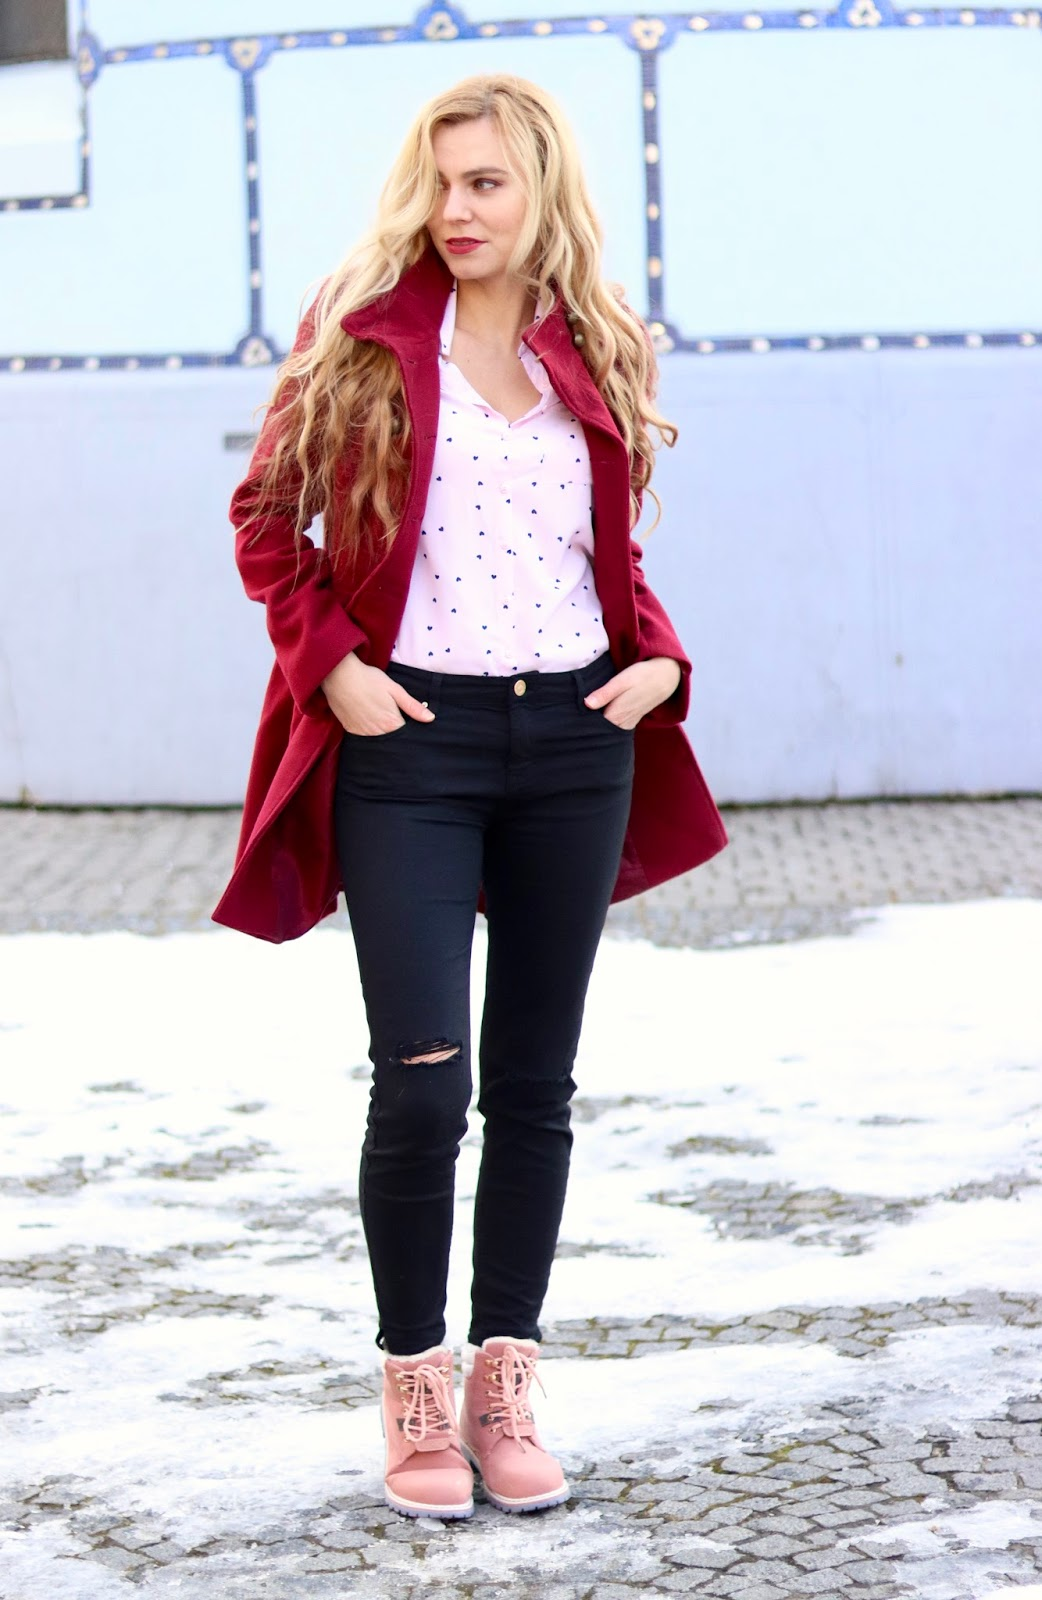 winter outfit women